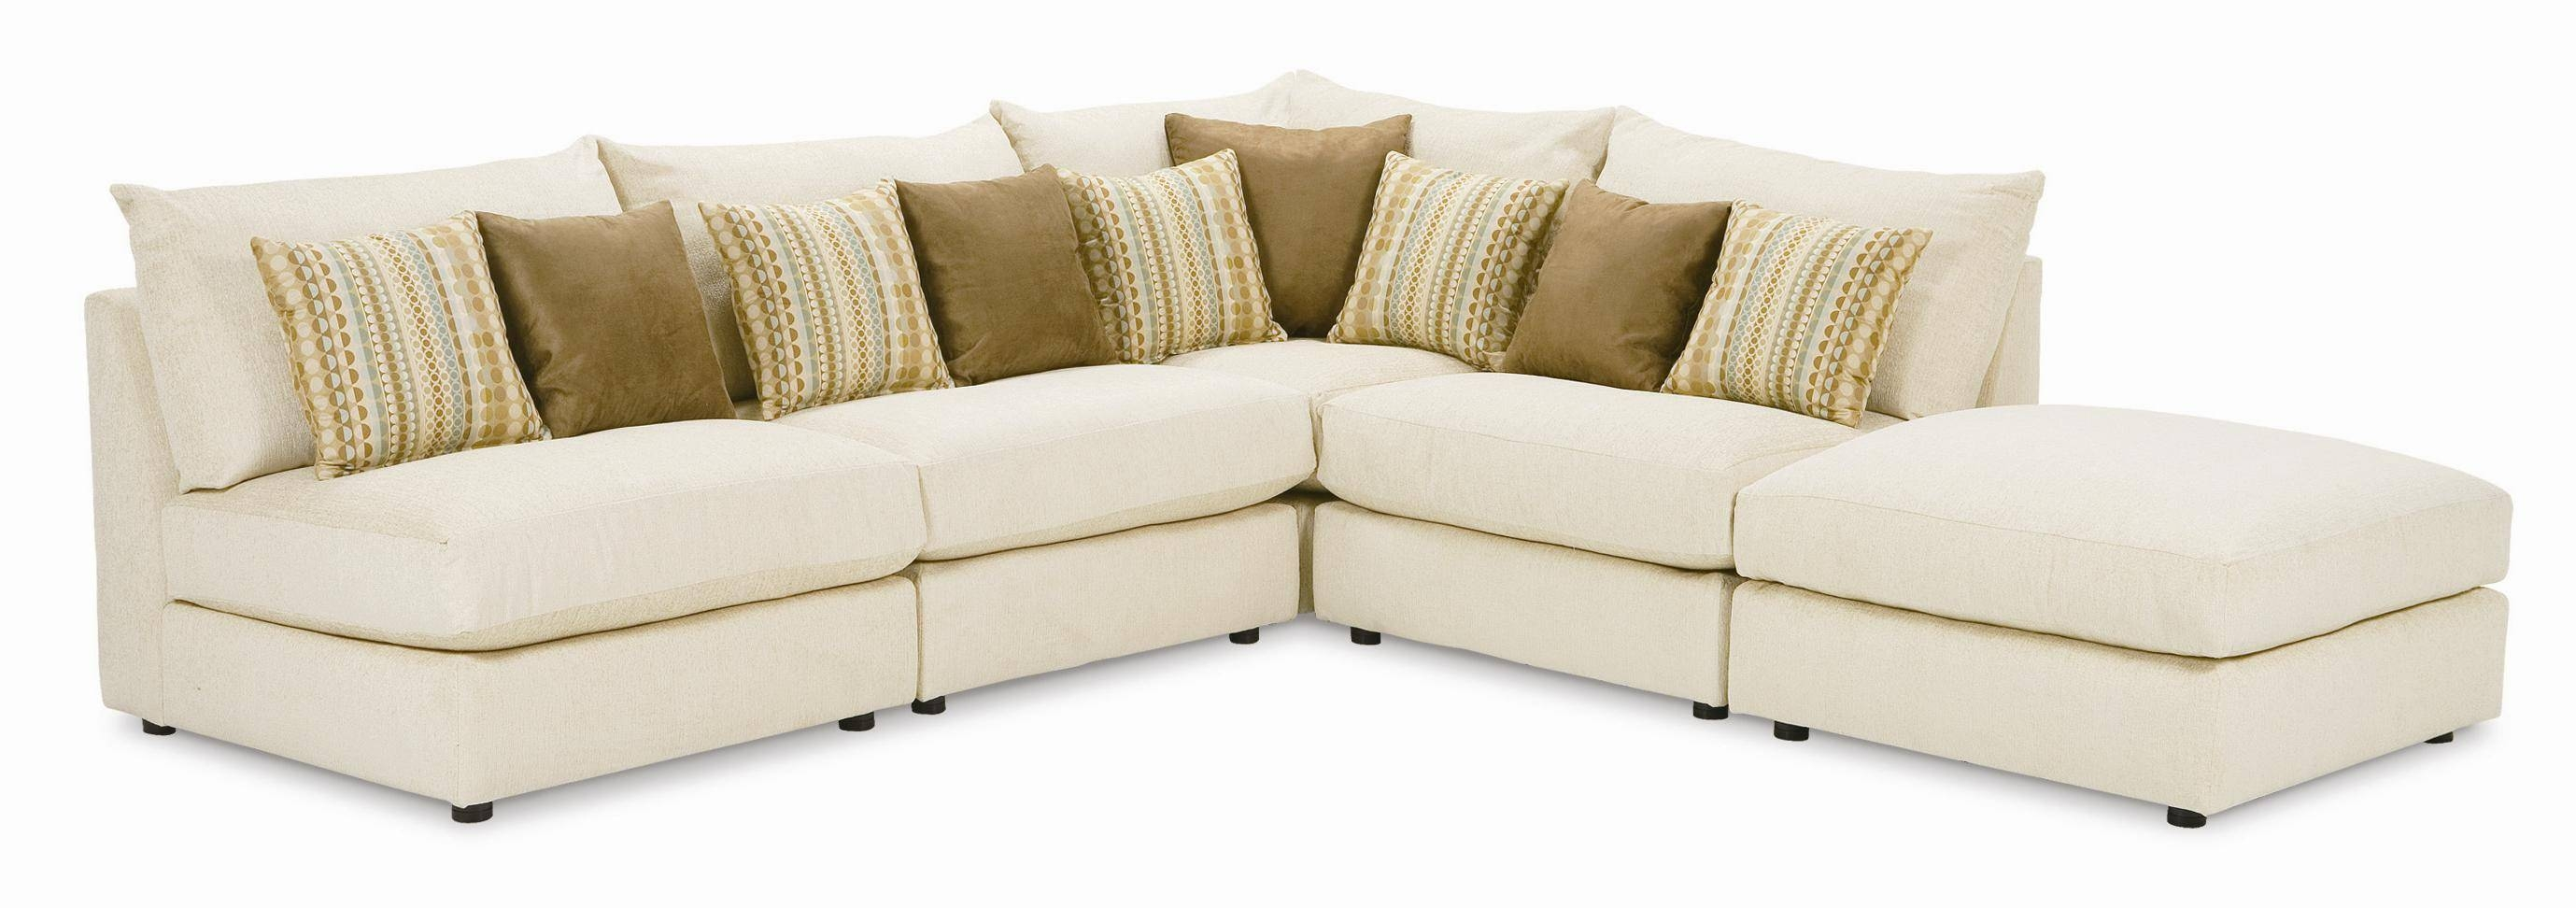 Rowe Tempo Five Piece Armless Sectional Sofa - Ahfa - Sofa throughout Armless Sectional Sofa (Image 22 of 30)